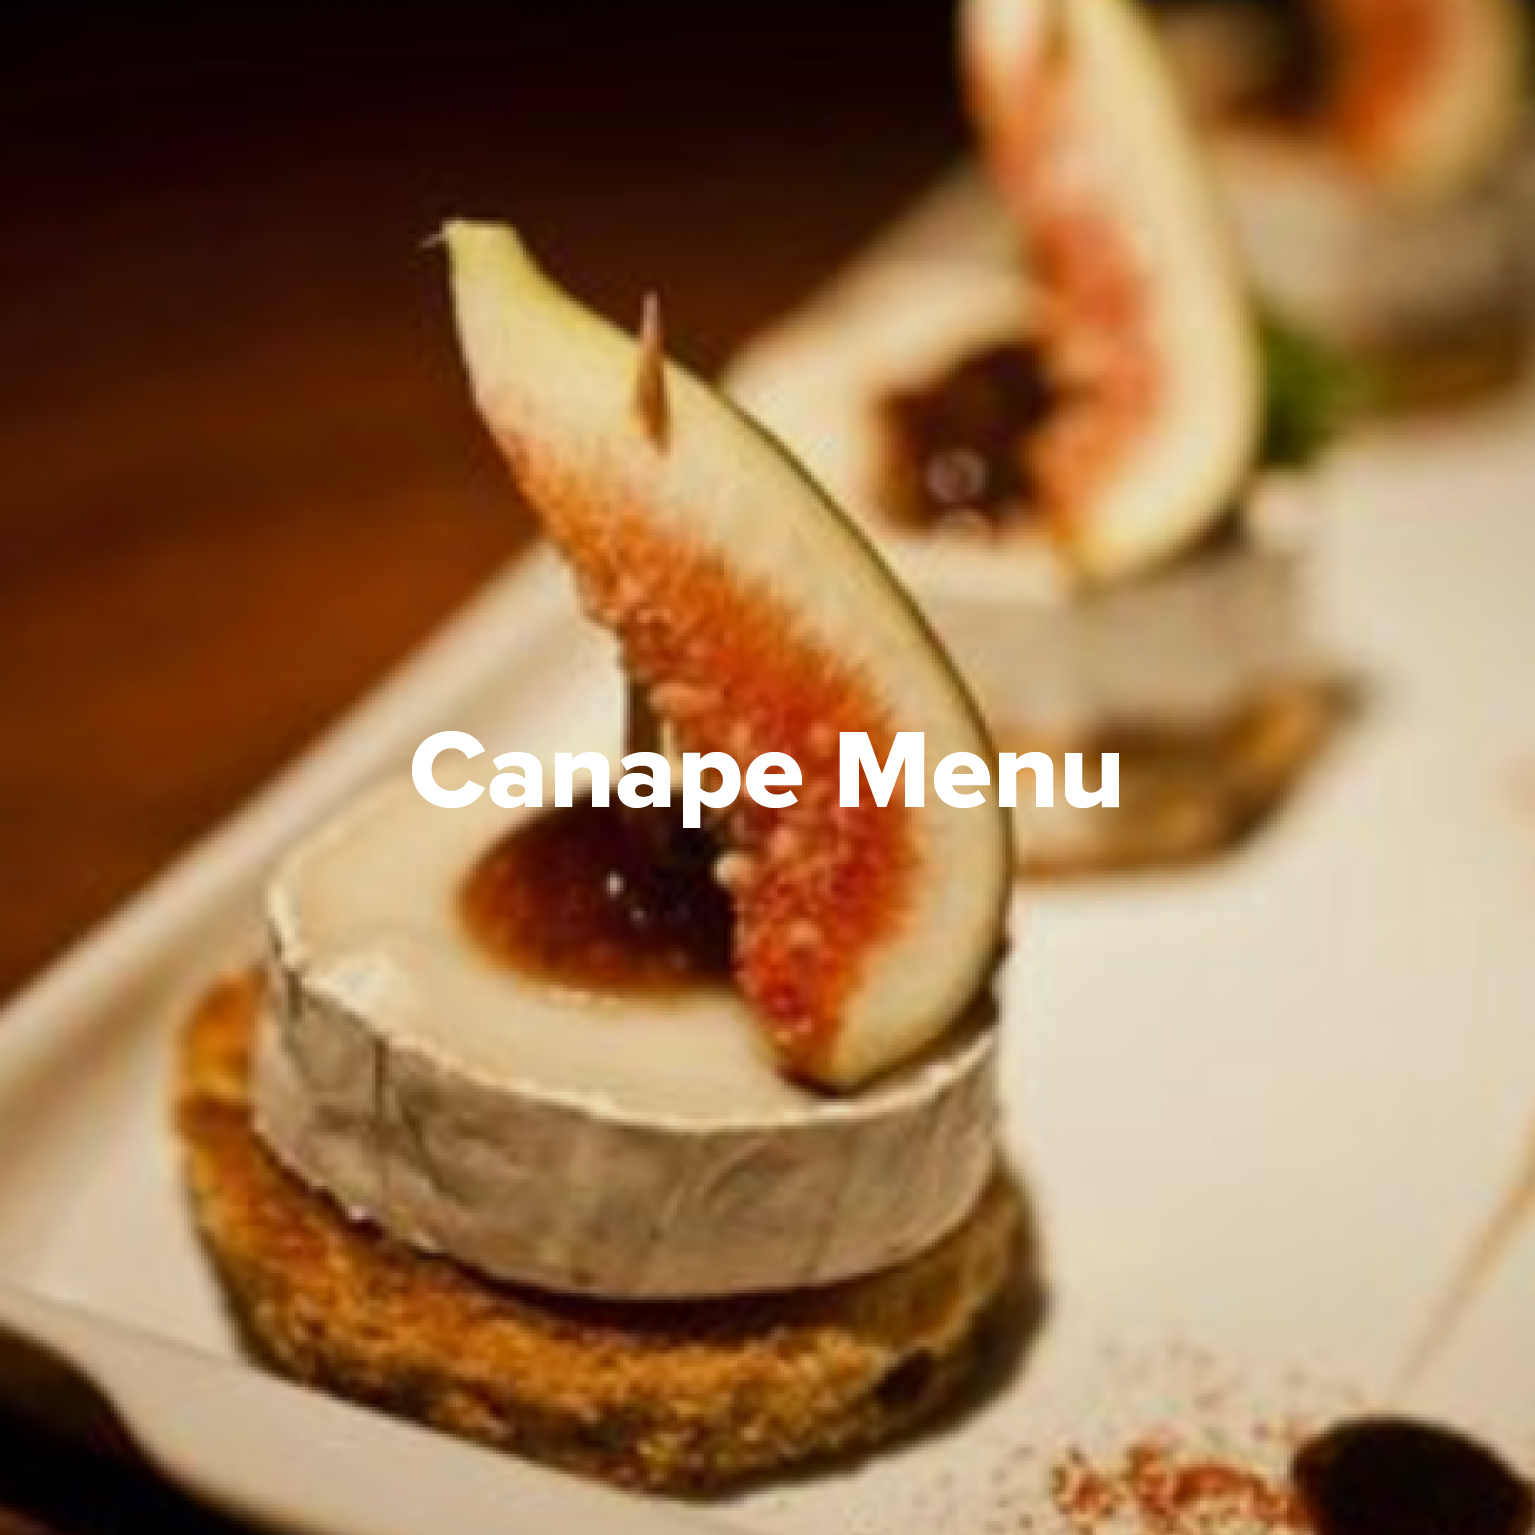 Canape Menu at Rowers on Cooks River